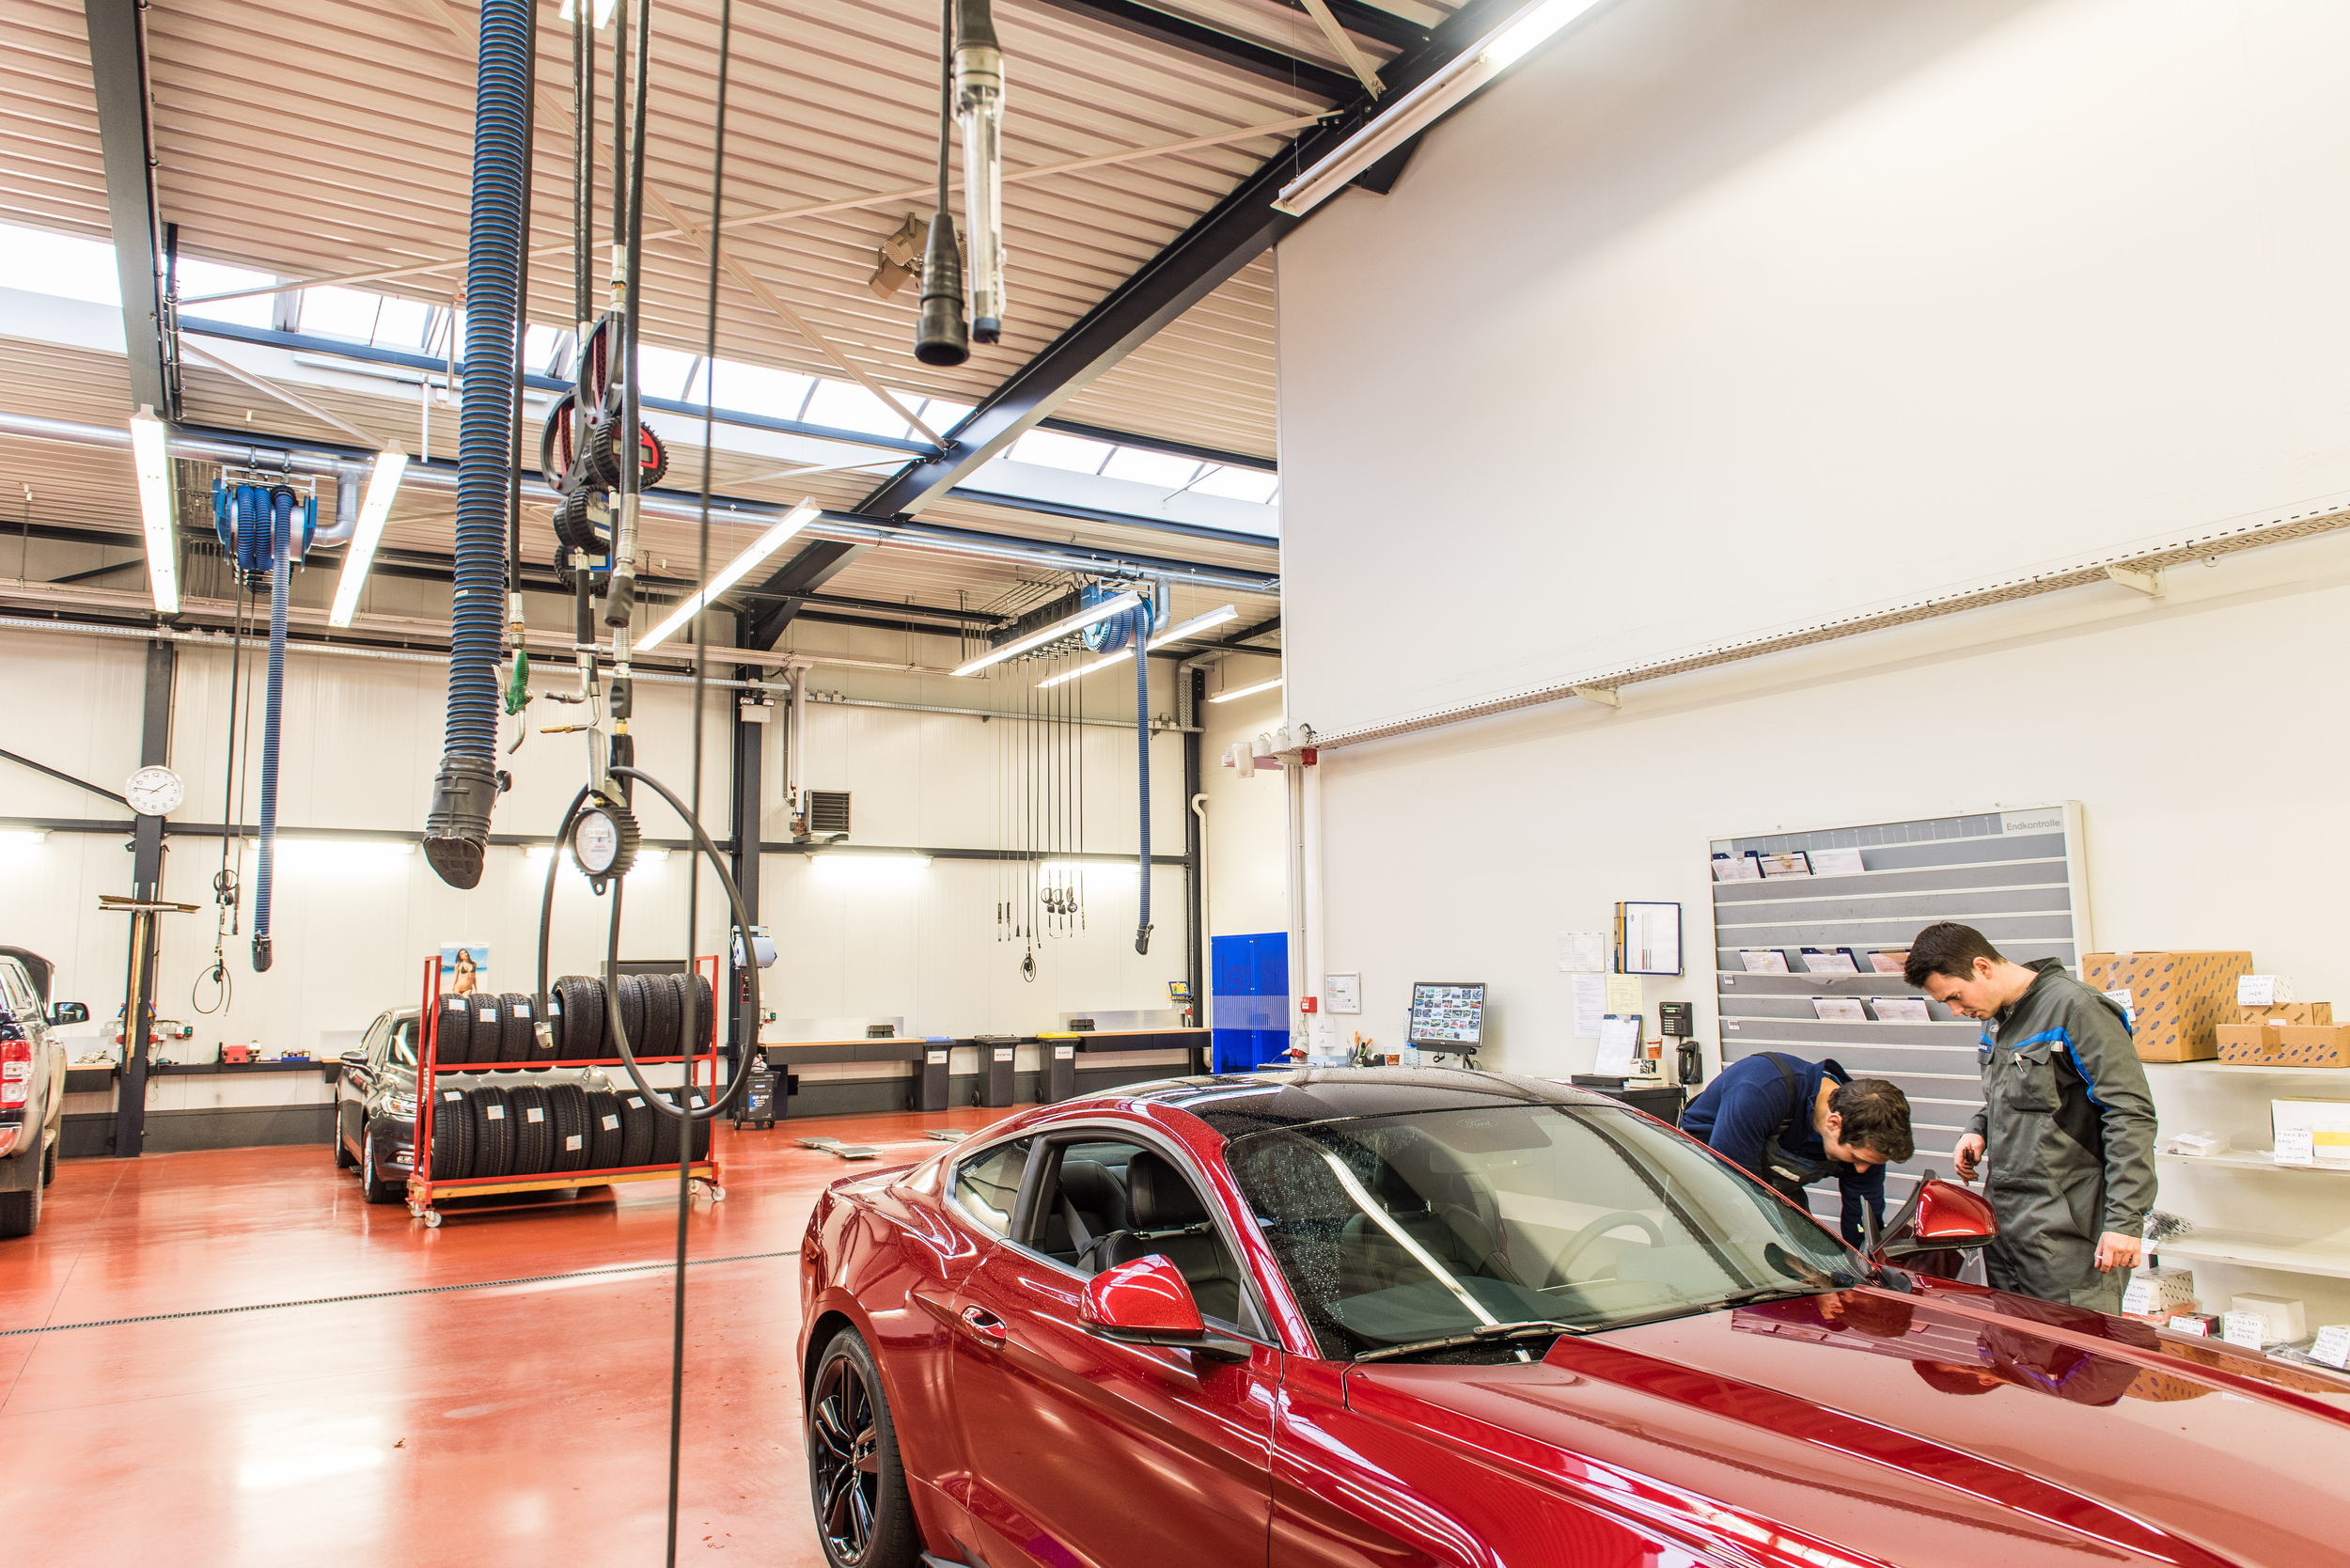 Garage noyens groep van roey for Garage ford saint louis